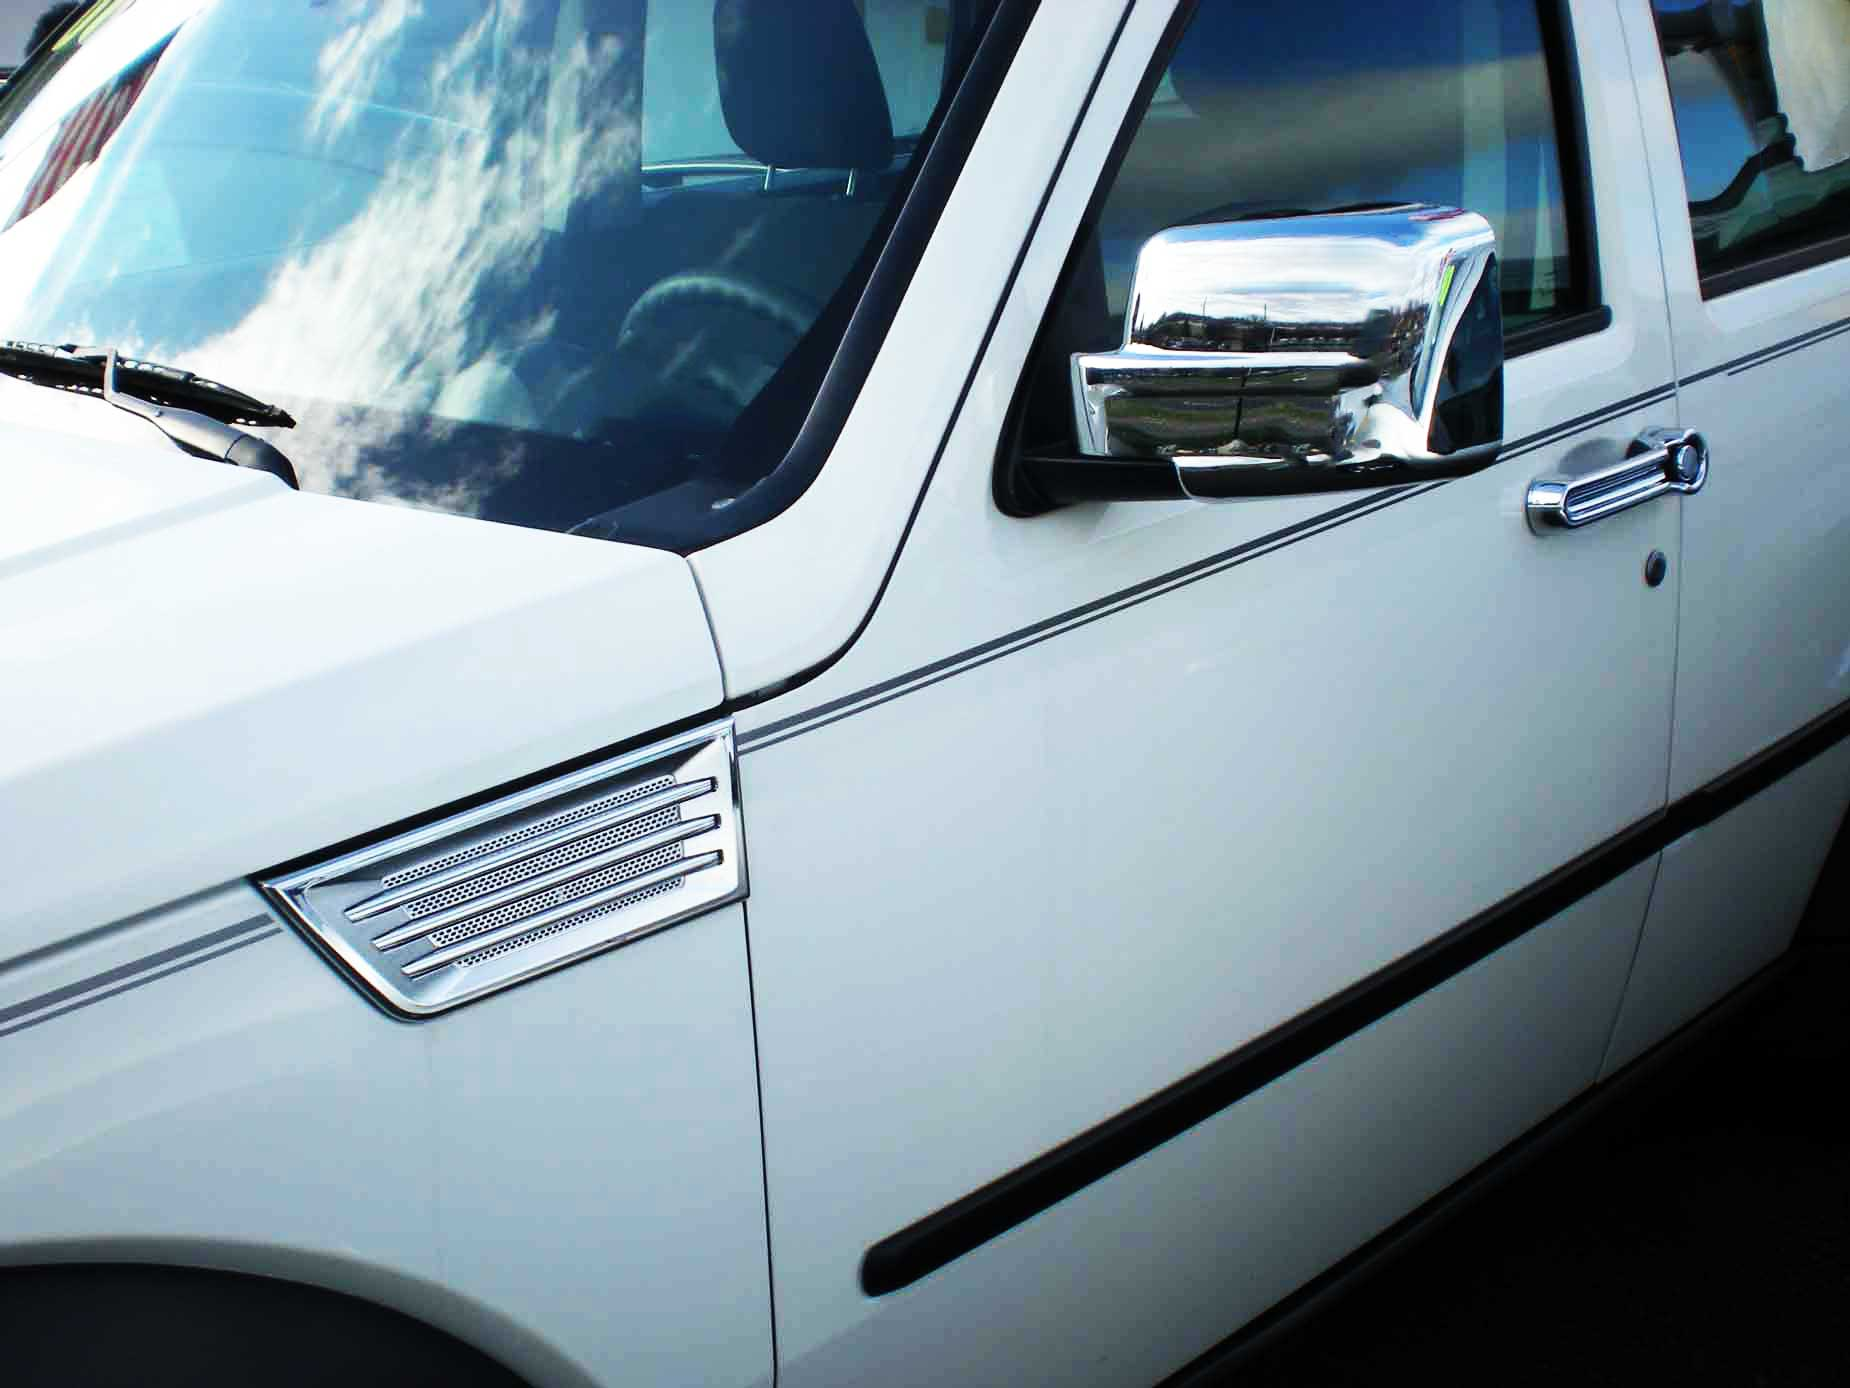 2014 Chrysler Town and Country Chrome Trim